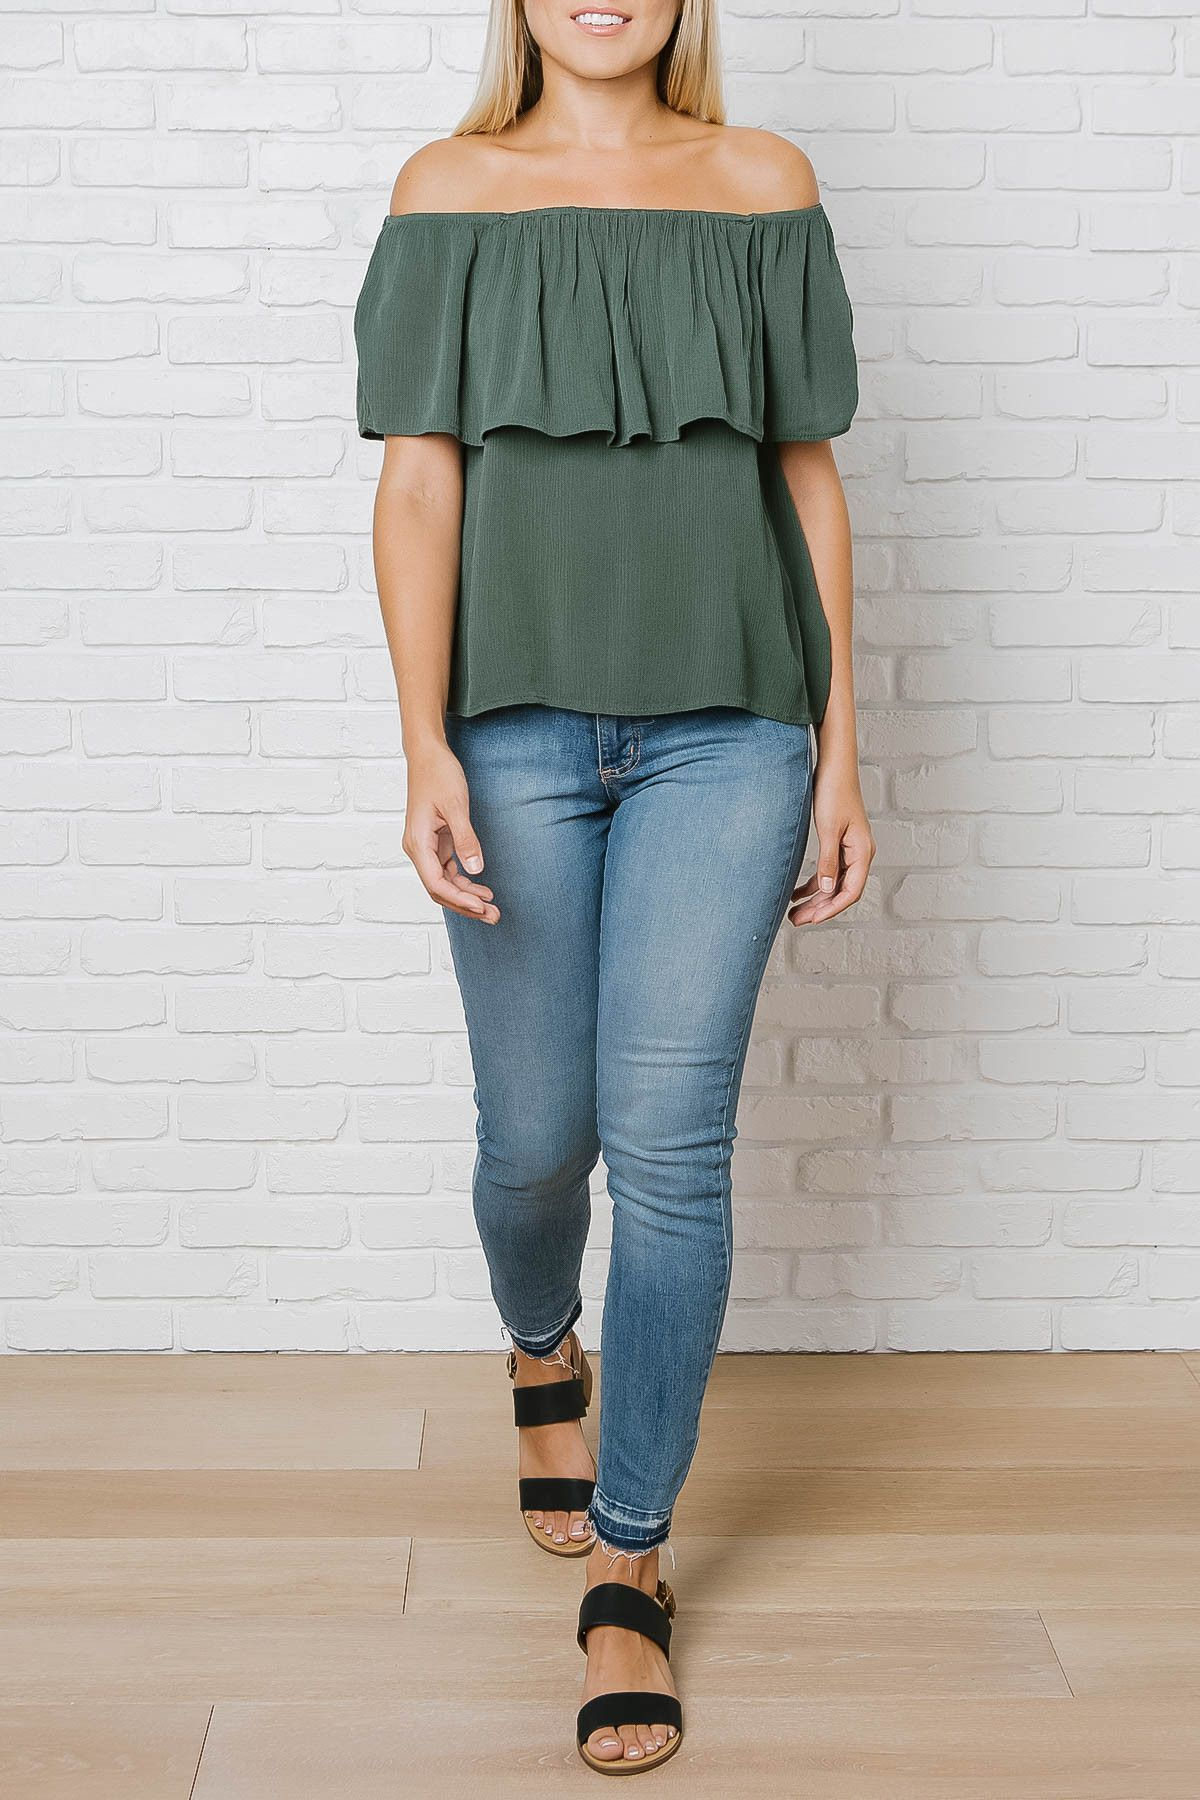 Ruffle Off-The-Shoulder Blouse in Olive